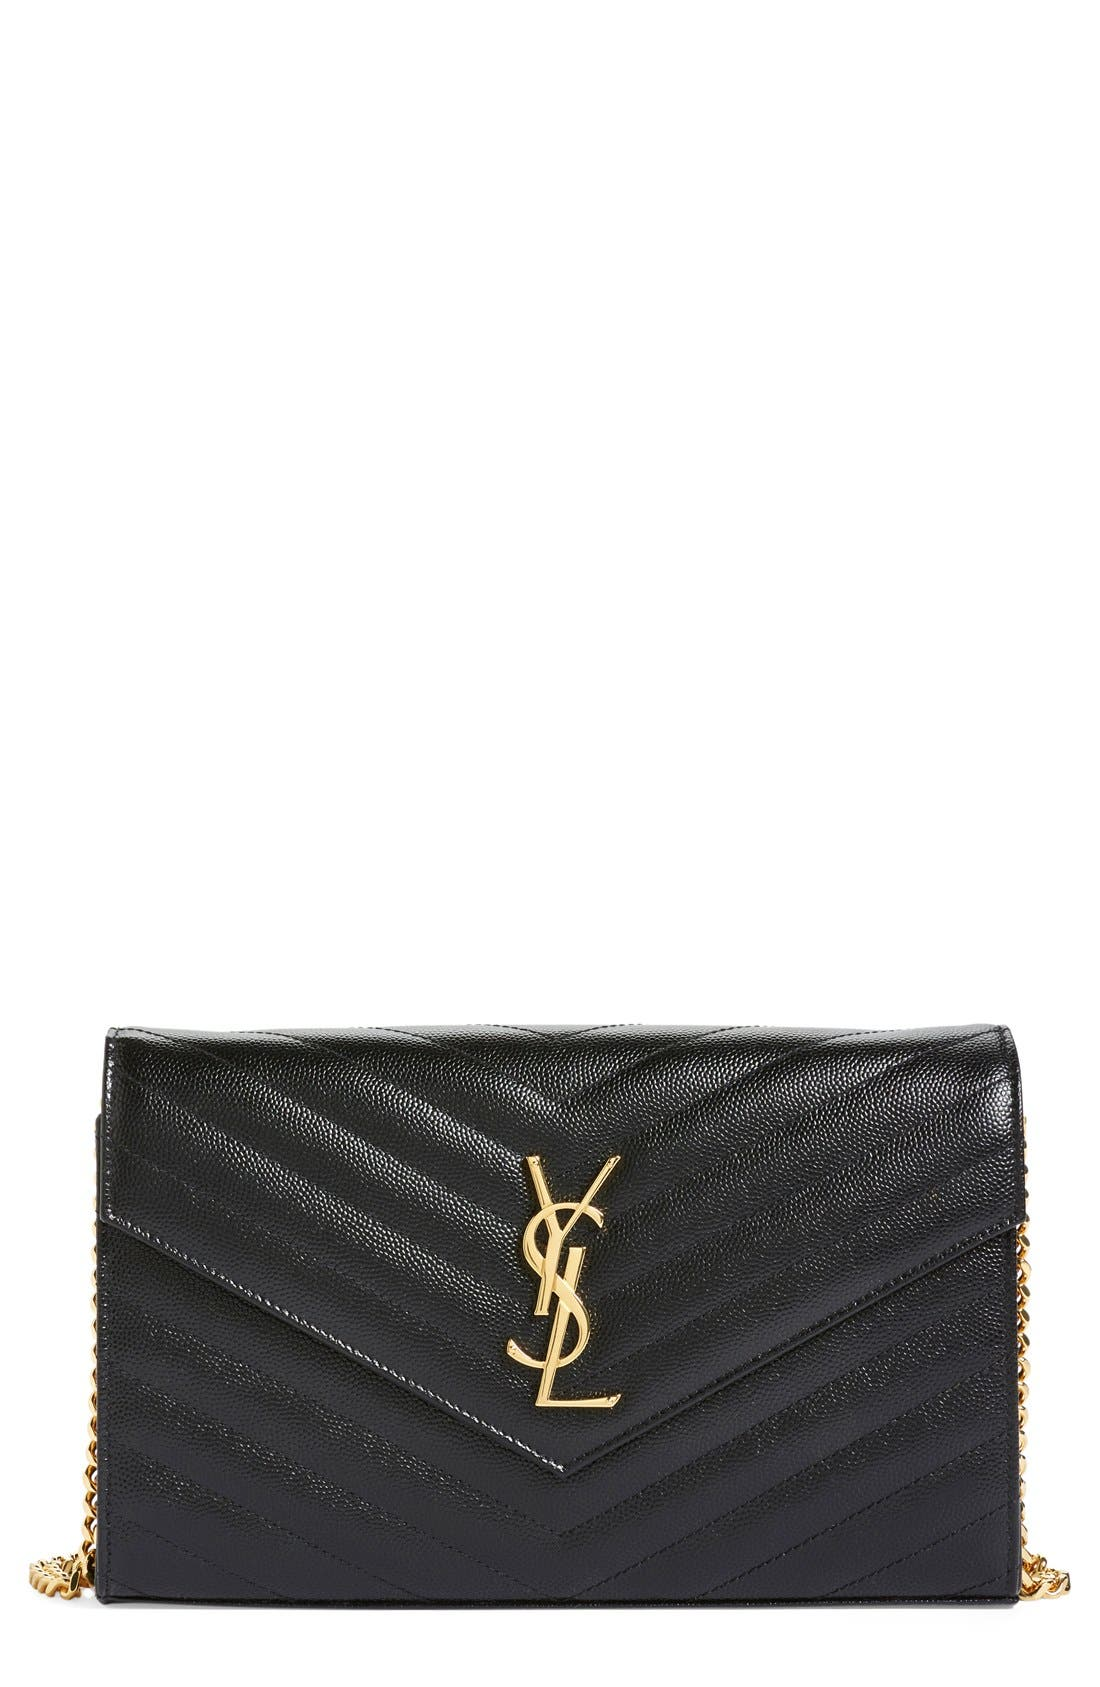 Main Image - Saint Laurent 'Large Monogram' Quilted Leather Wallet on a Chain